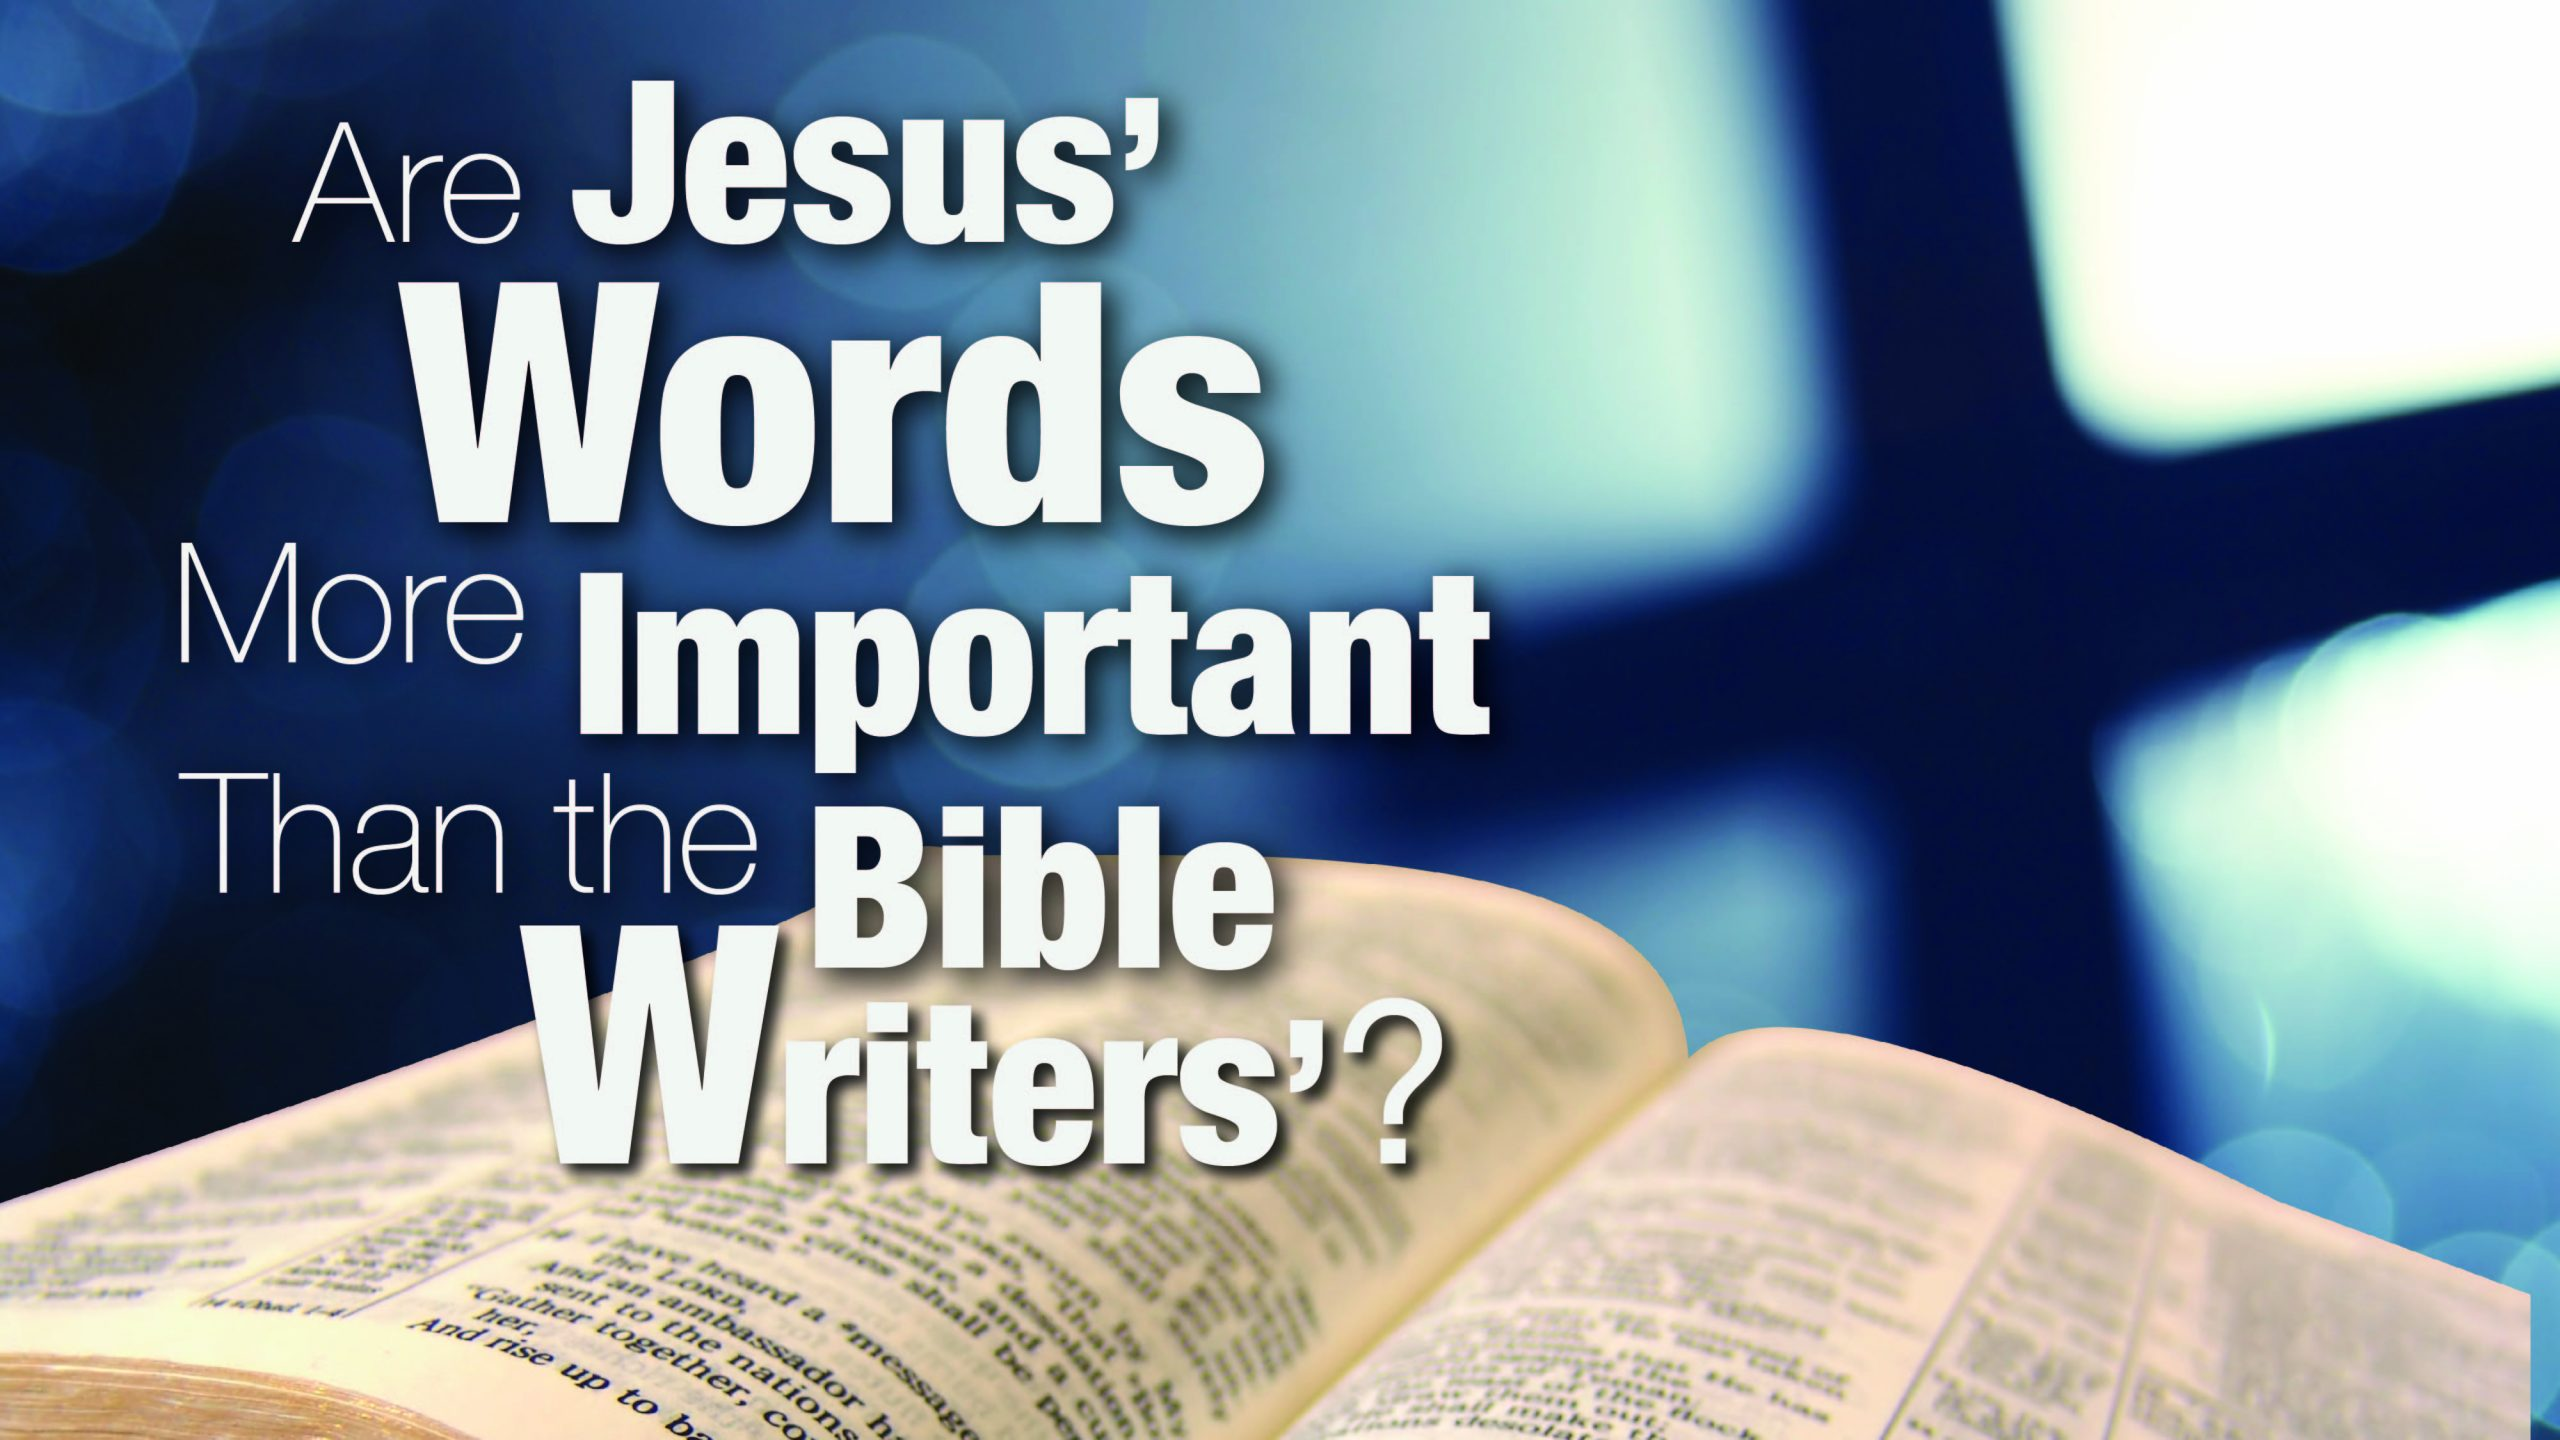 Are Jesus' Words More Important Than the Bible Writers'?